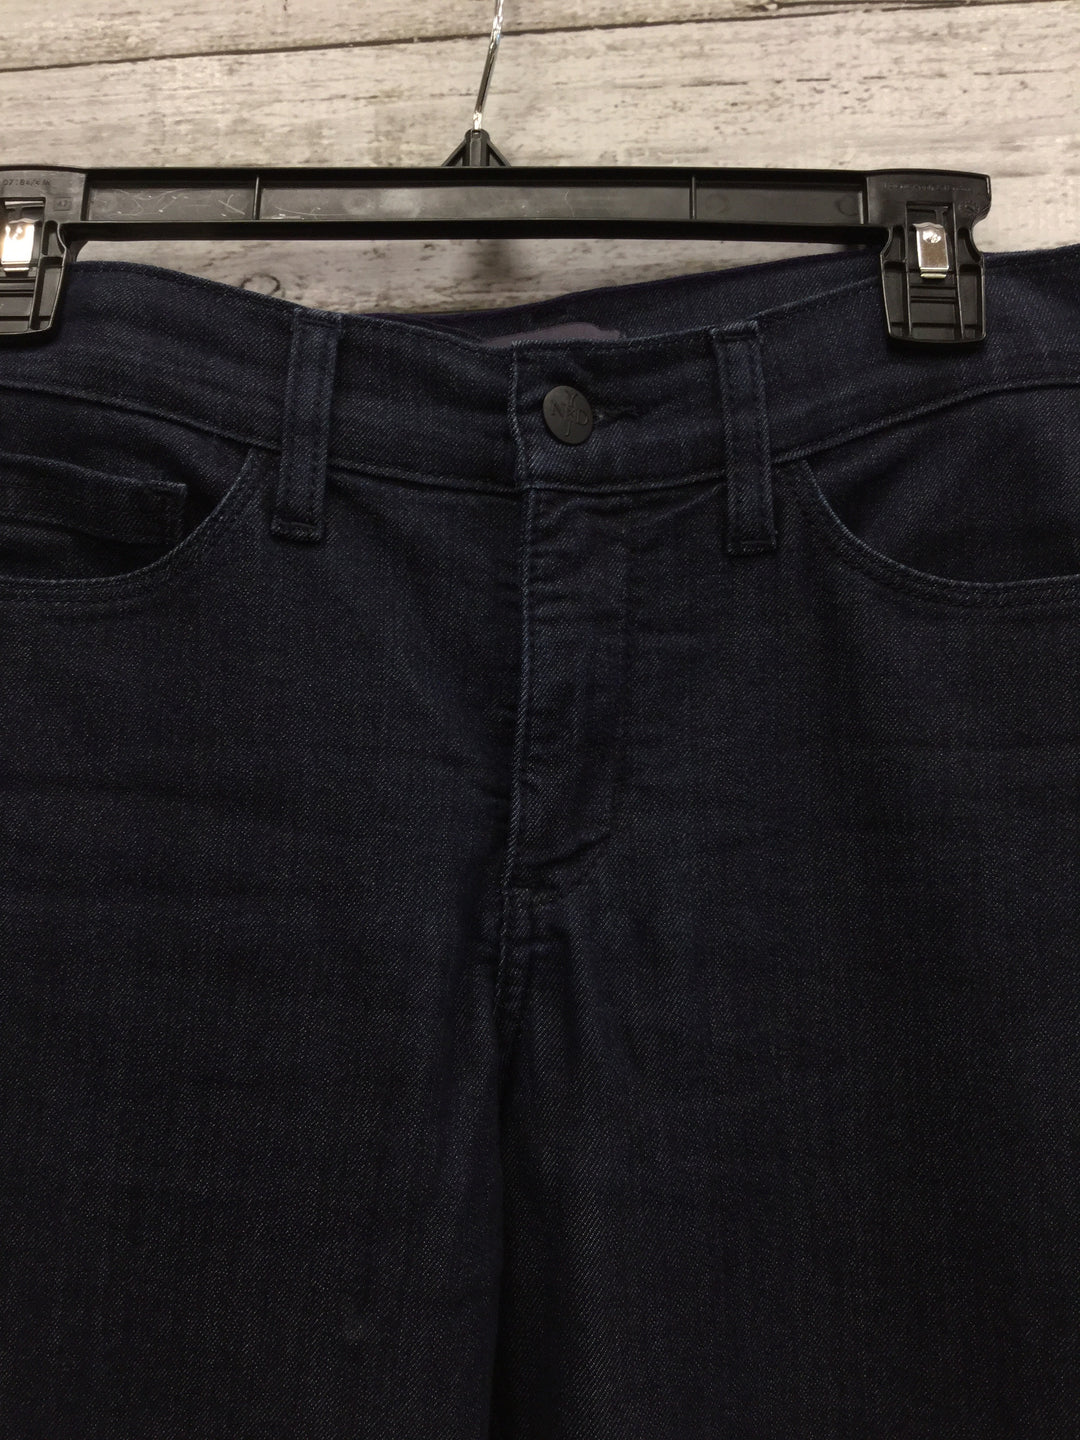 Photo #1 - BRAND: NOT YOUR DAUGHTERS JEANS , STYLE: JEANS , COLOR: DENIM , SIZE: 4 PETITE, SKU: 127-2767-86450, , SIZE 4 PETITE IN GREAT CONDITION.